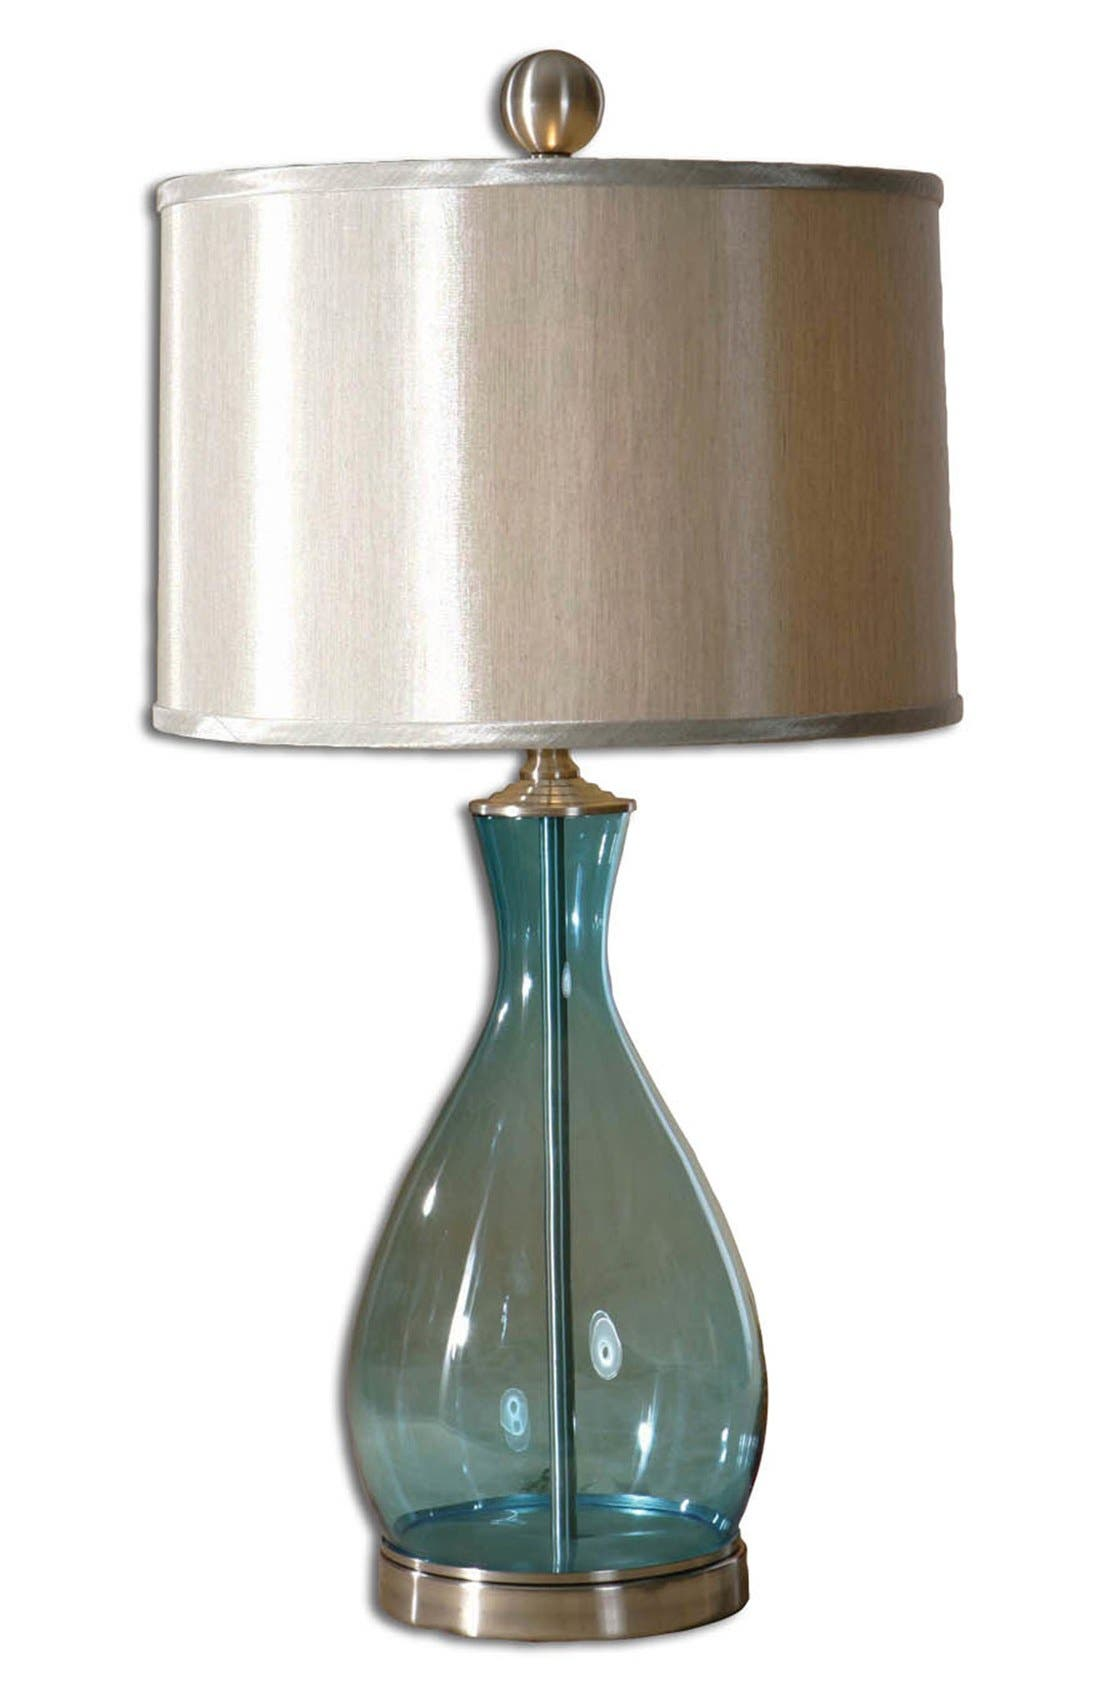 Main Image - Uttermost 'Meena' Blue Blown Glass Table Lamp